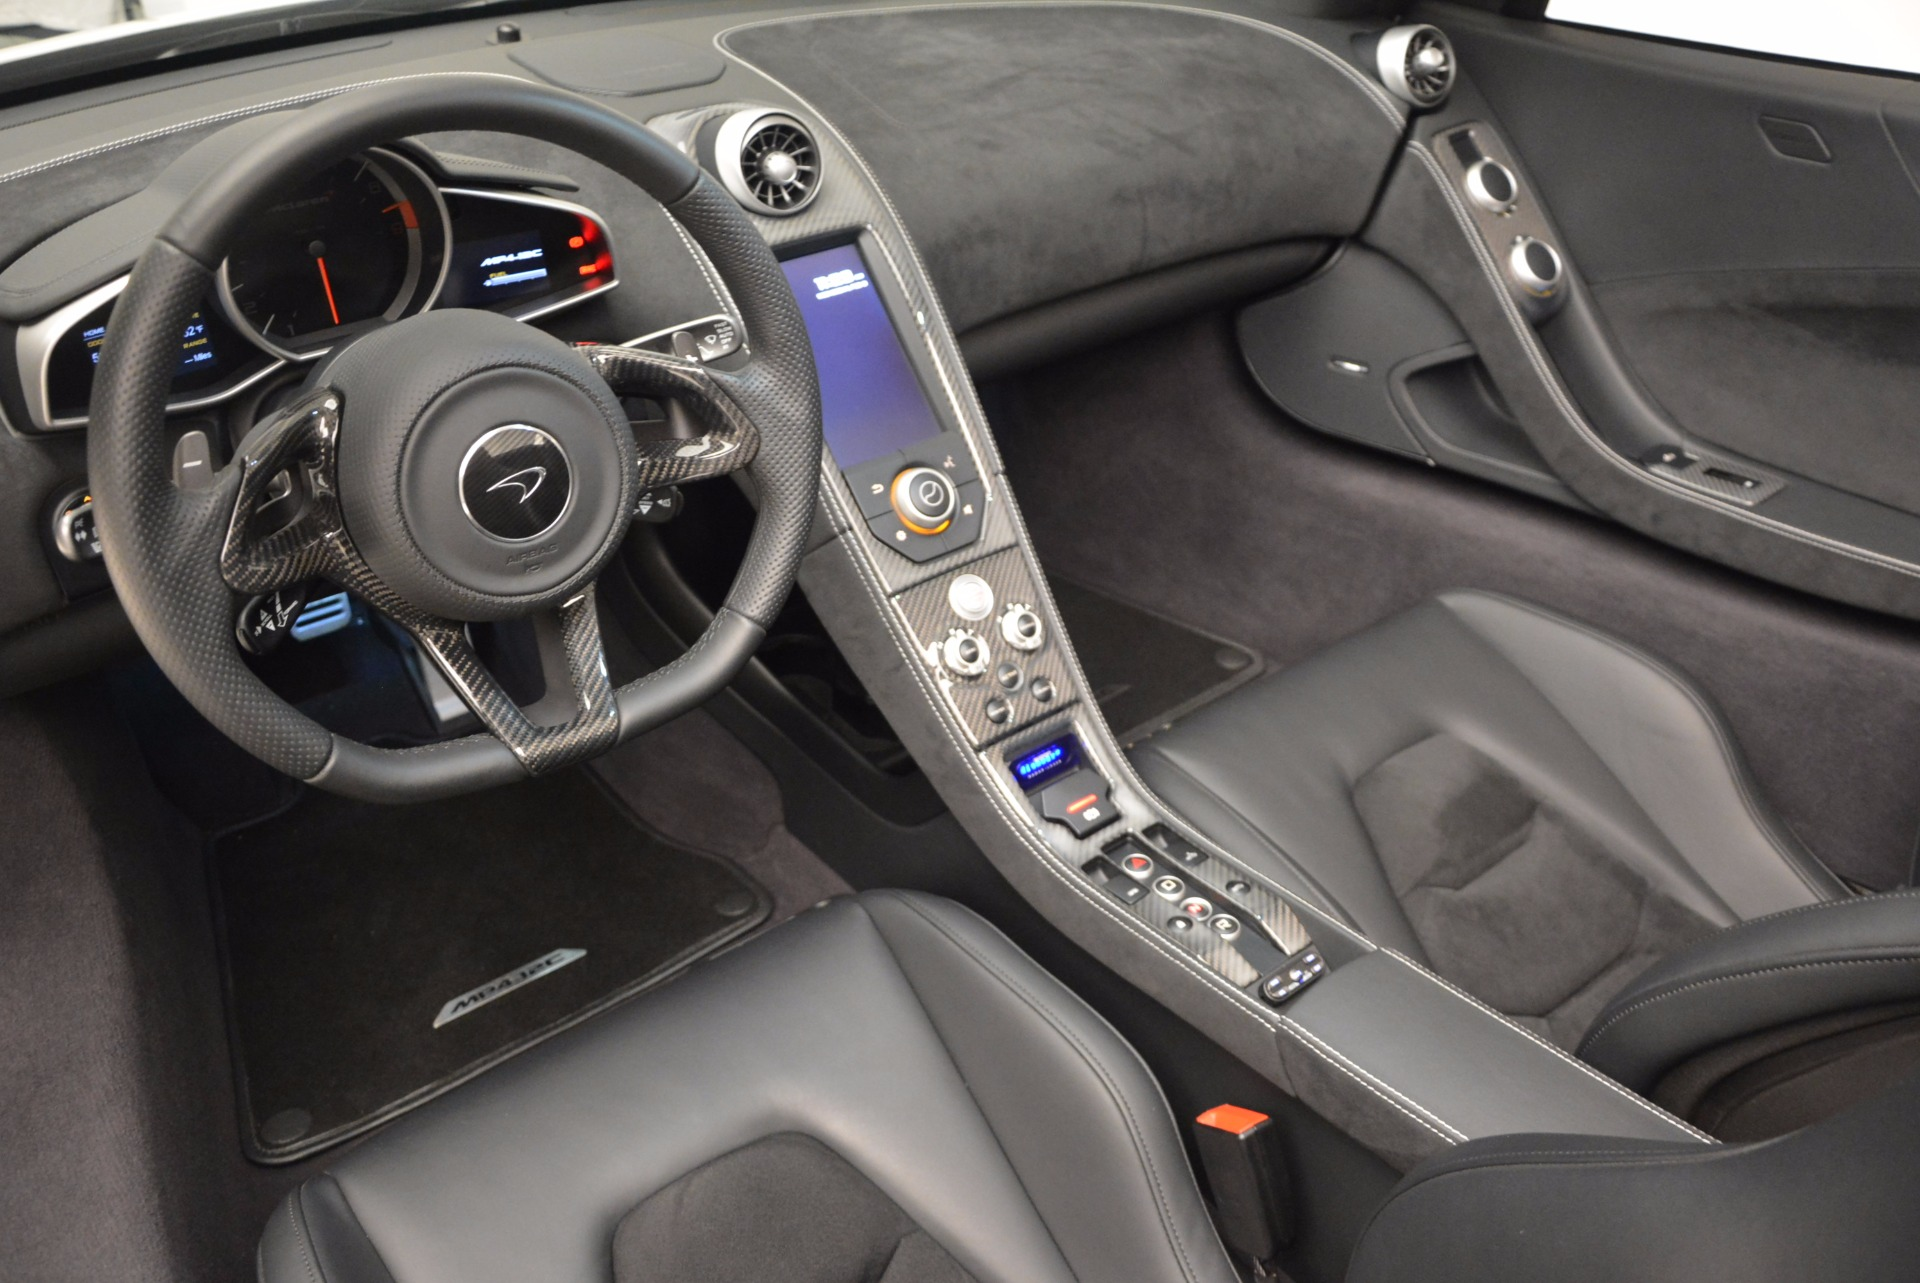 Used 2014 McLaren MP4-12C Spider For Sale In Greenwich, CT. Alfa Romeo of Greenwich, 3136 908_p26